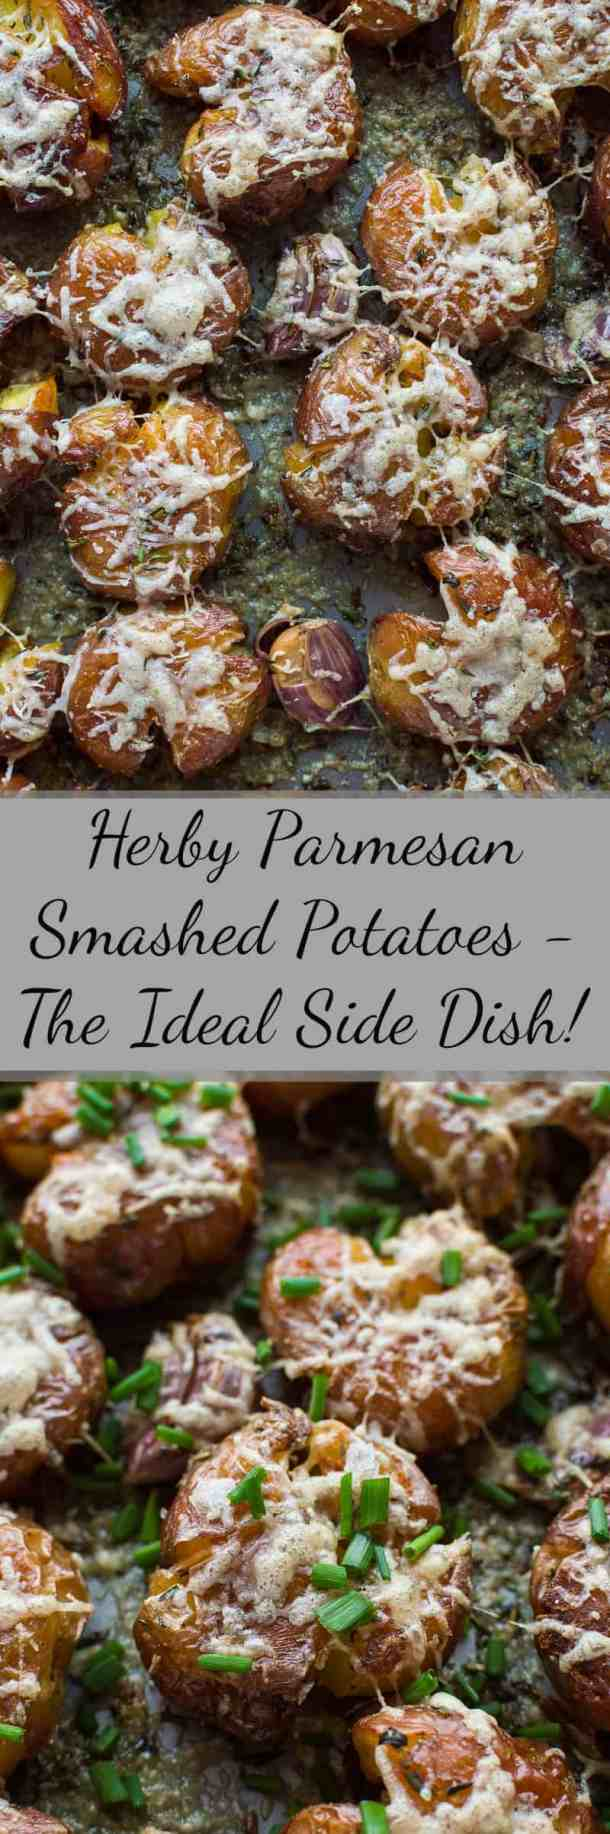 Herby parmesan smashed potatoes - soft on the inside, crispy on the outside, these are the ultimate side-dish!